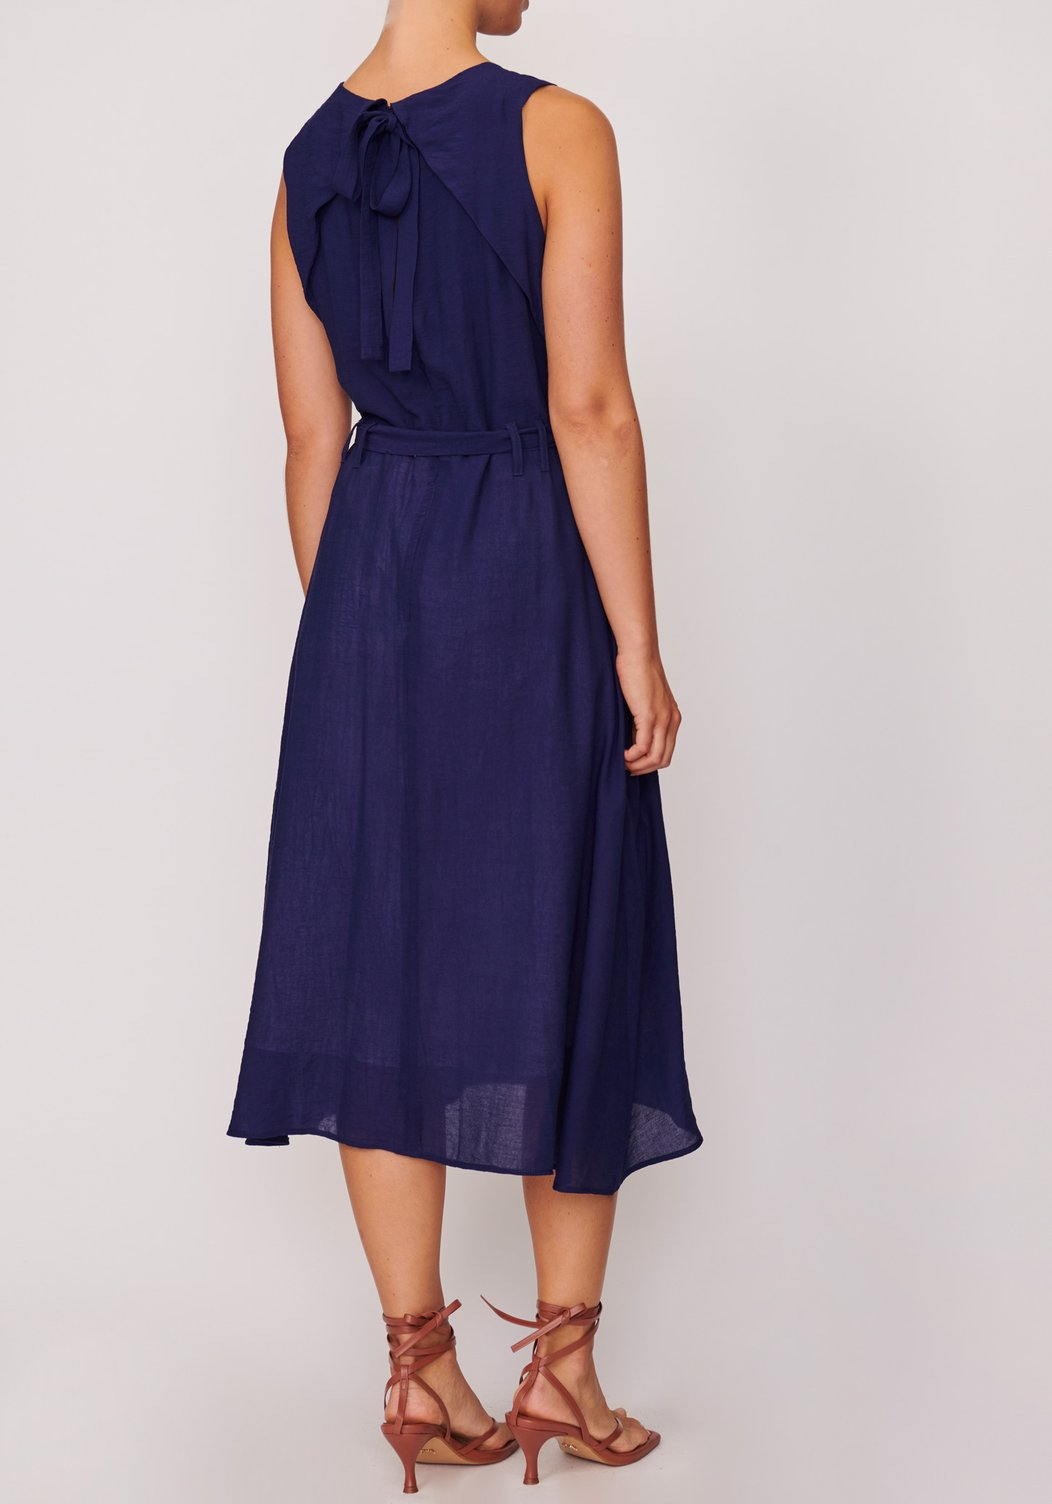 Pol Muse Origami Dress - Navy